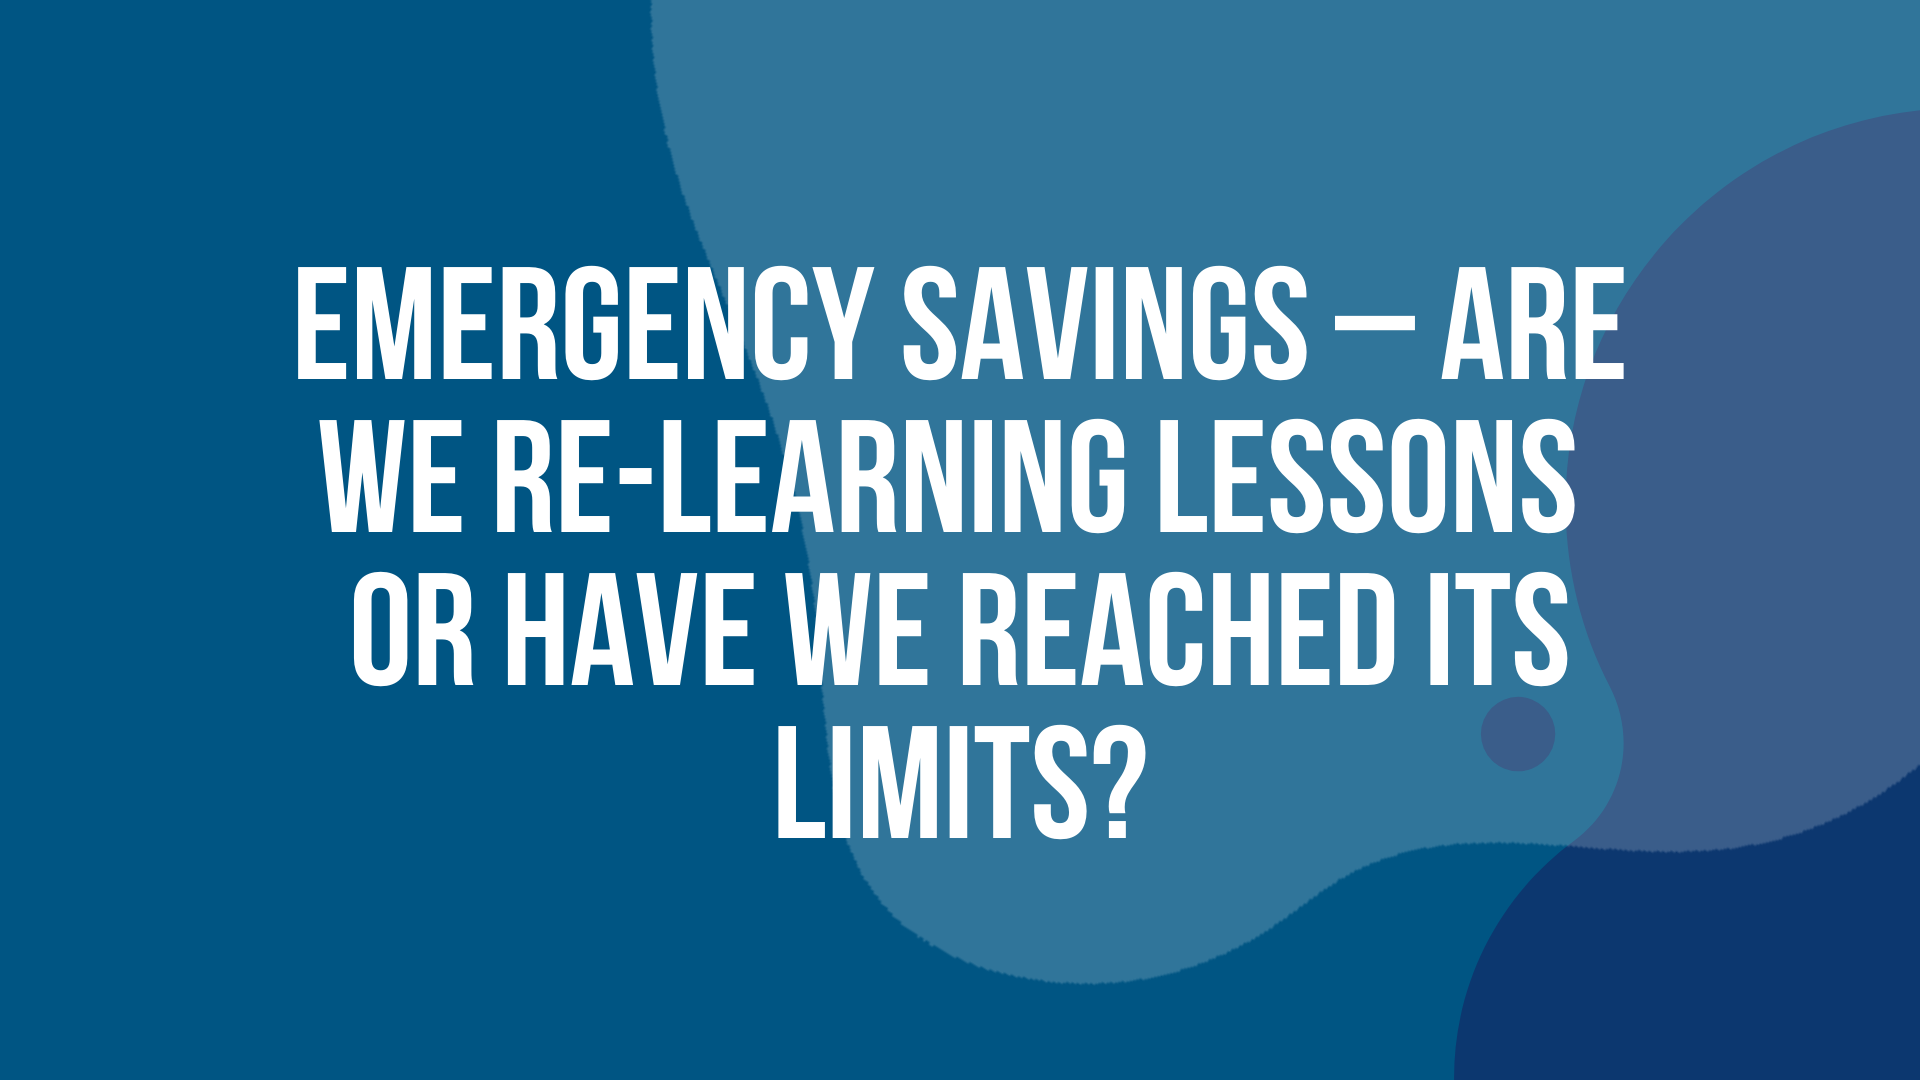 Emergency Savings: Re-Learning Lessons or Have we Reached its Limits?